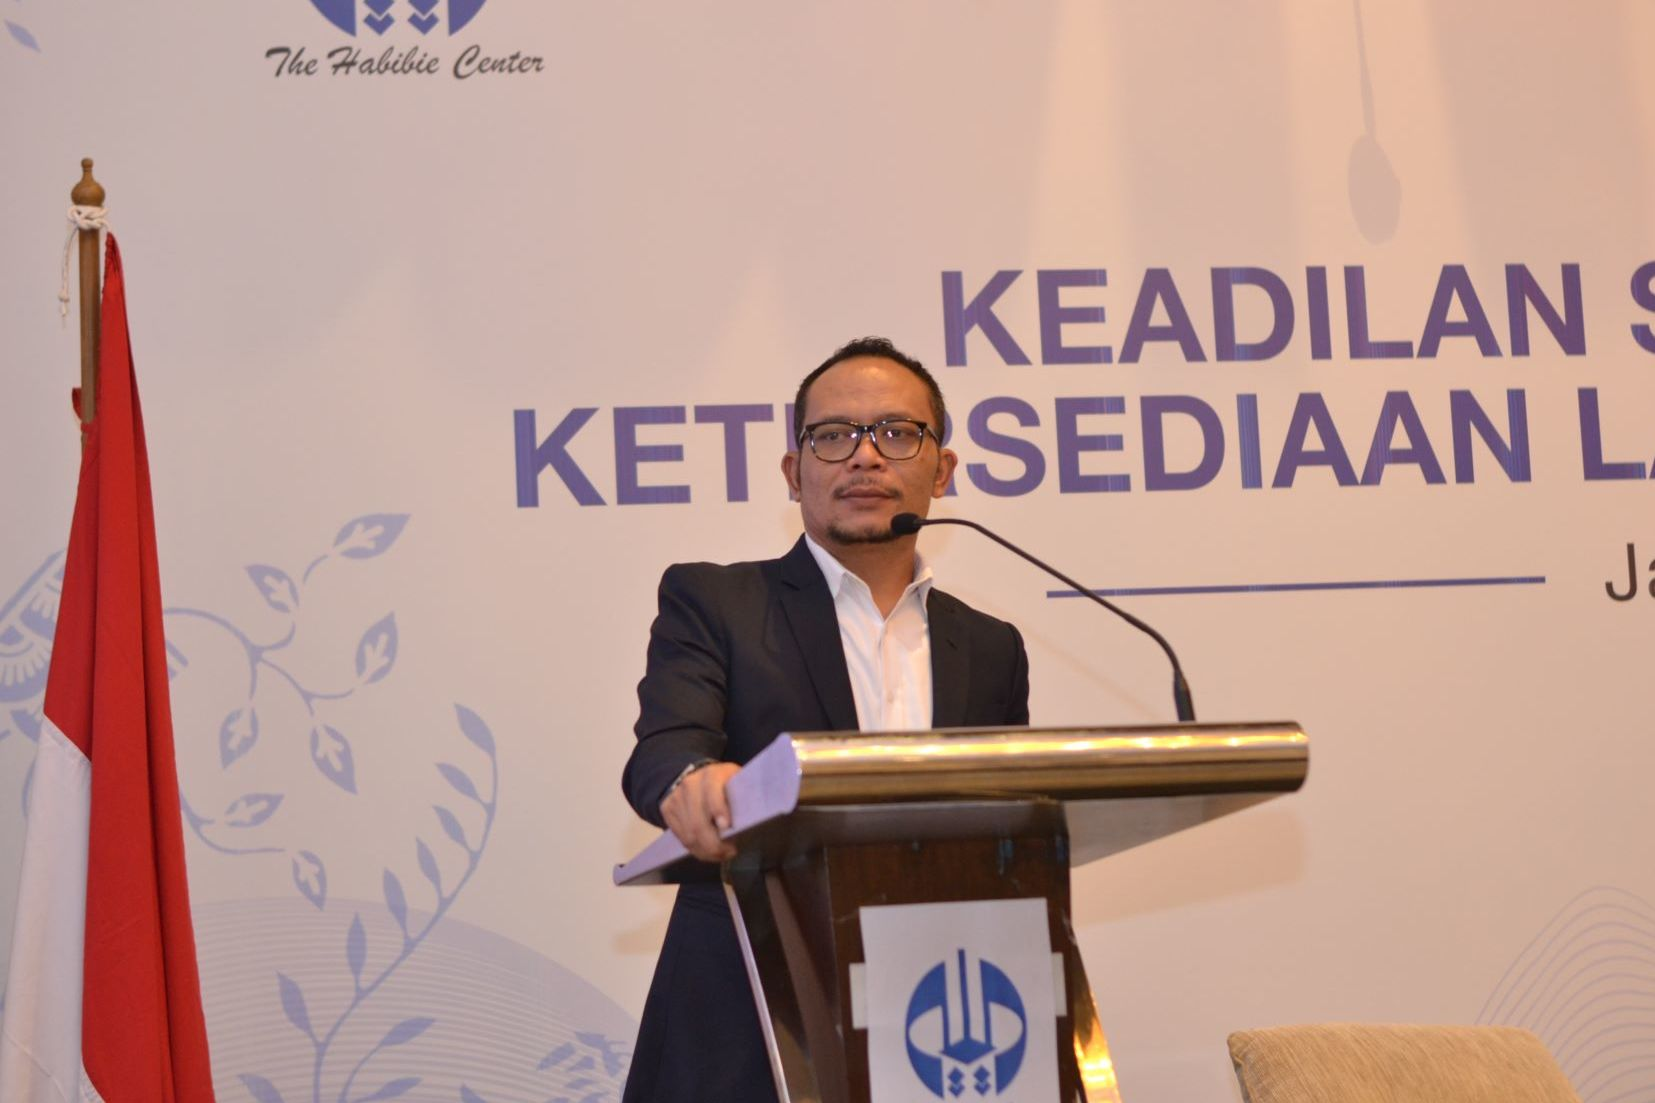 The Keynote Speech was delivered by H.E. Hanif Dhakiri, Indonesian Minister of Labour.